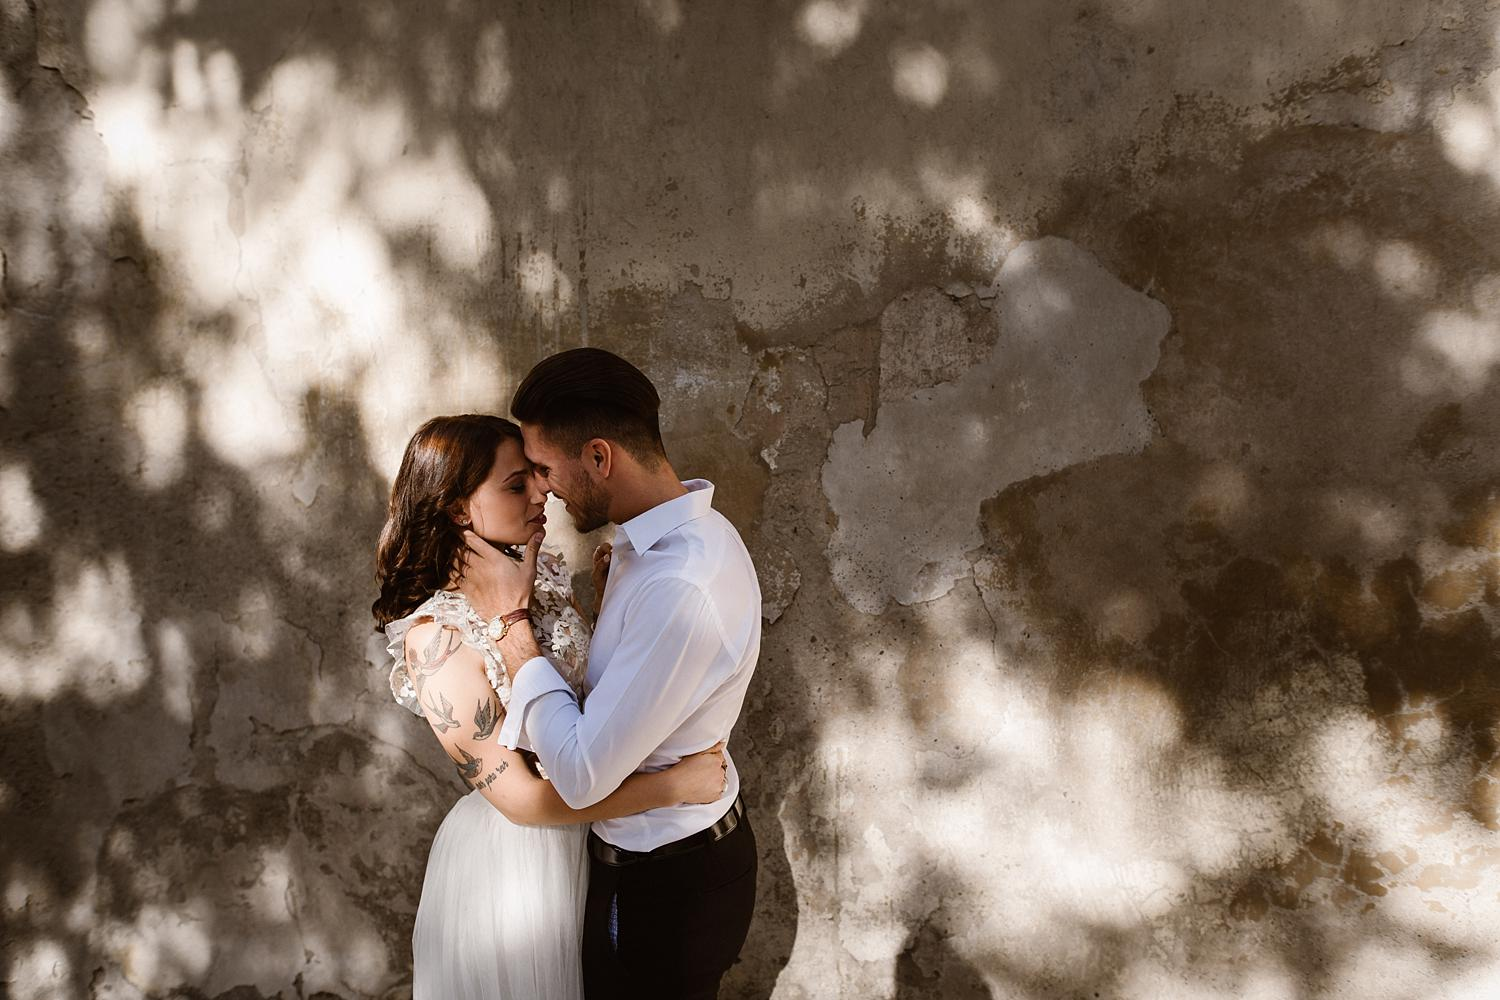 weddingphotographer florence 07 - Maddalena & Arturo - A Chic Anniversary Session in Florence